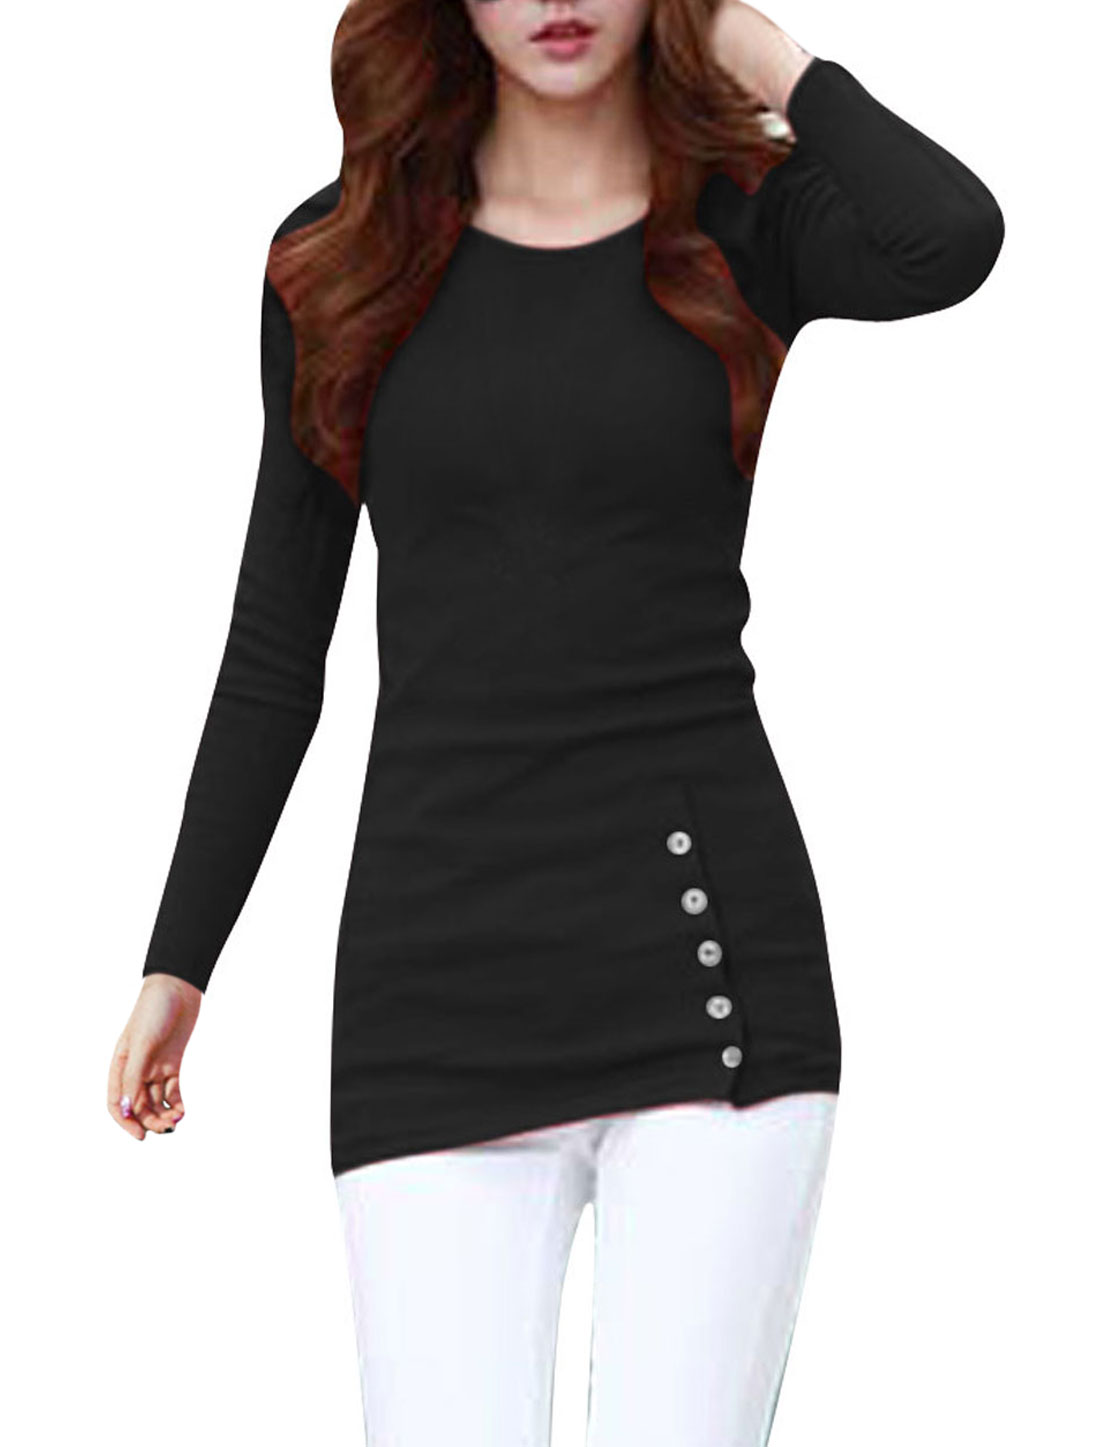 Woman Stylish Slant Button Decor Front Slim Fit Black Tunic Top Shirt XS